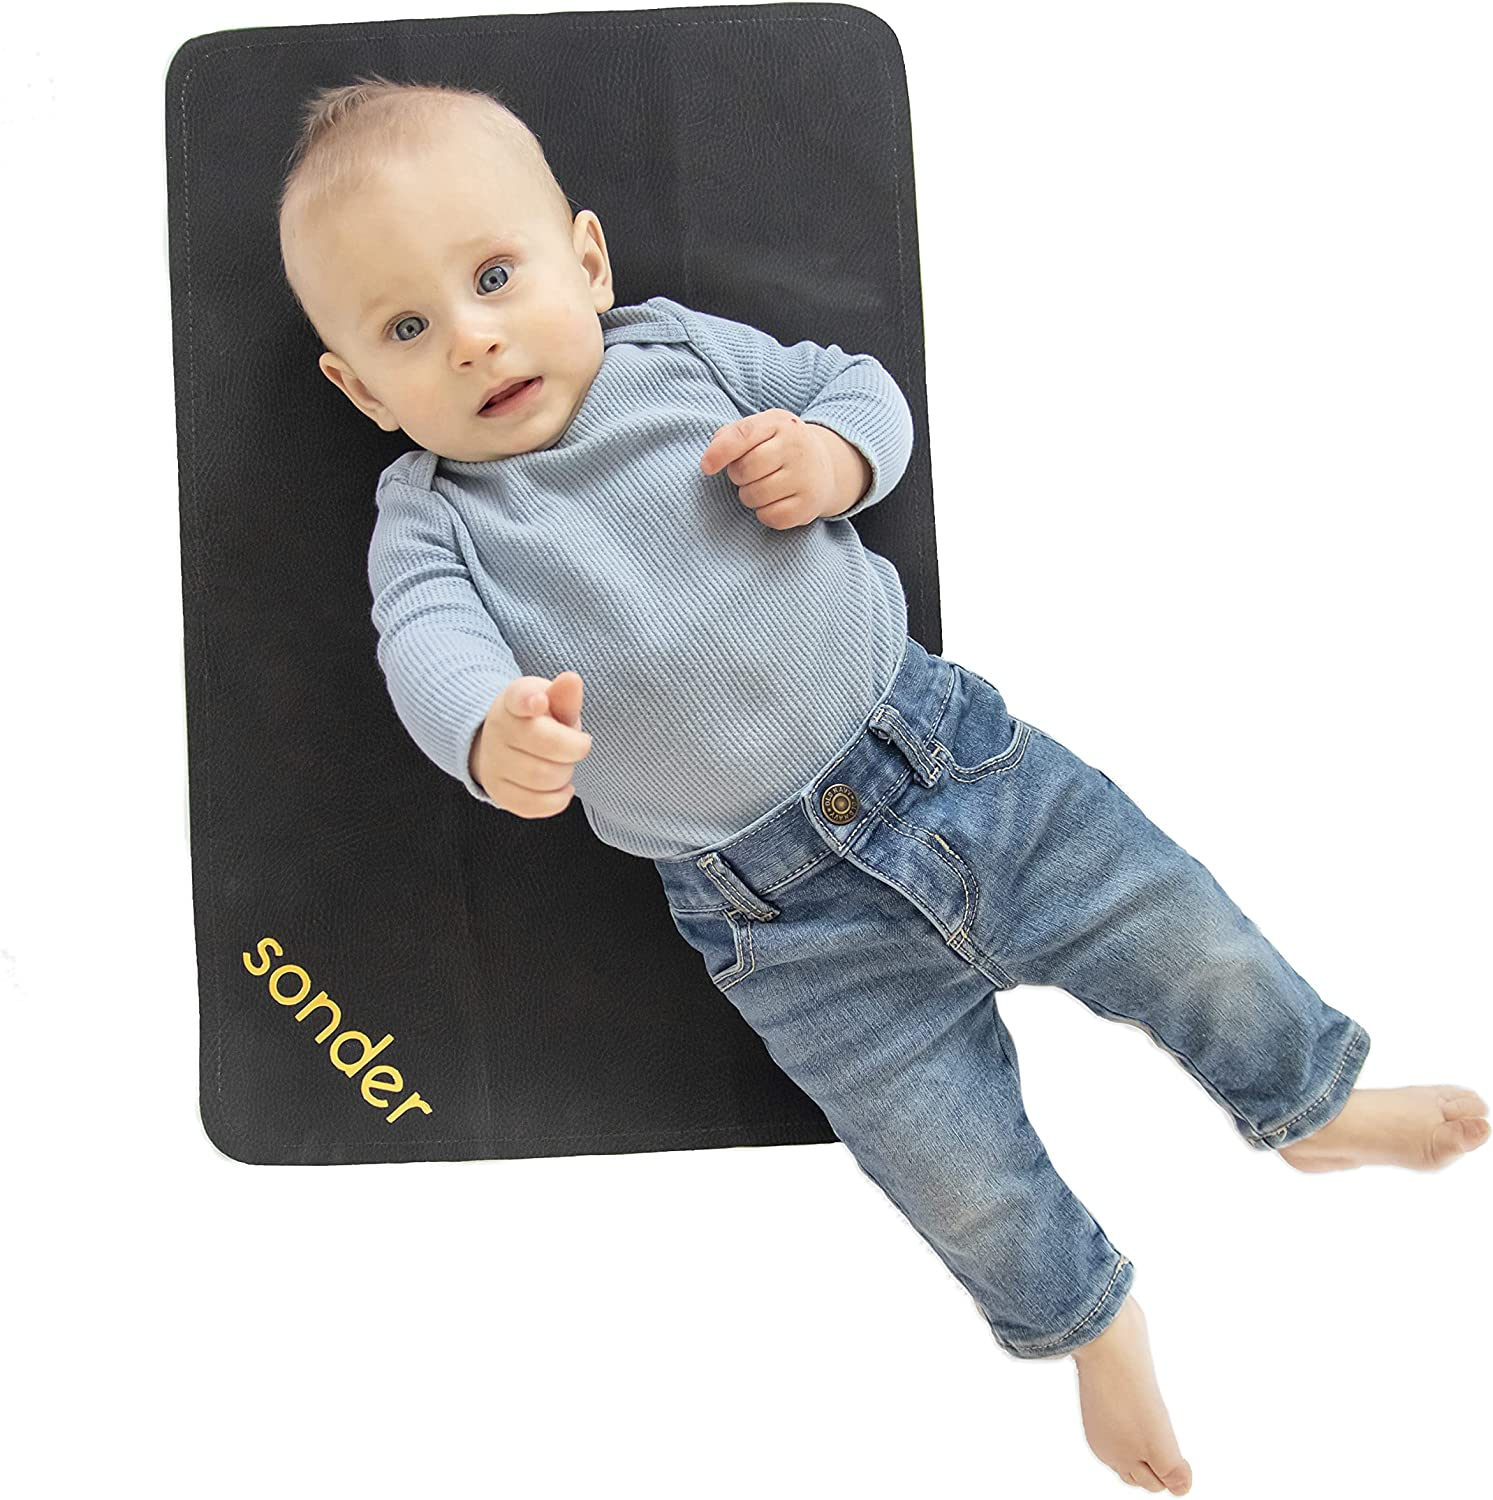 SONDER Double Sided Vegan Leather Changing Mat - Infant and Toddler Multipurpose Portable Waterproof Diaper Pad - Compact for Travel - Deluxe Diaper Changer (Raven + Ivory, 14